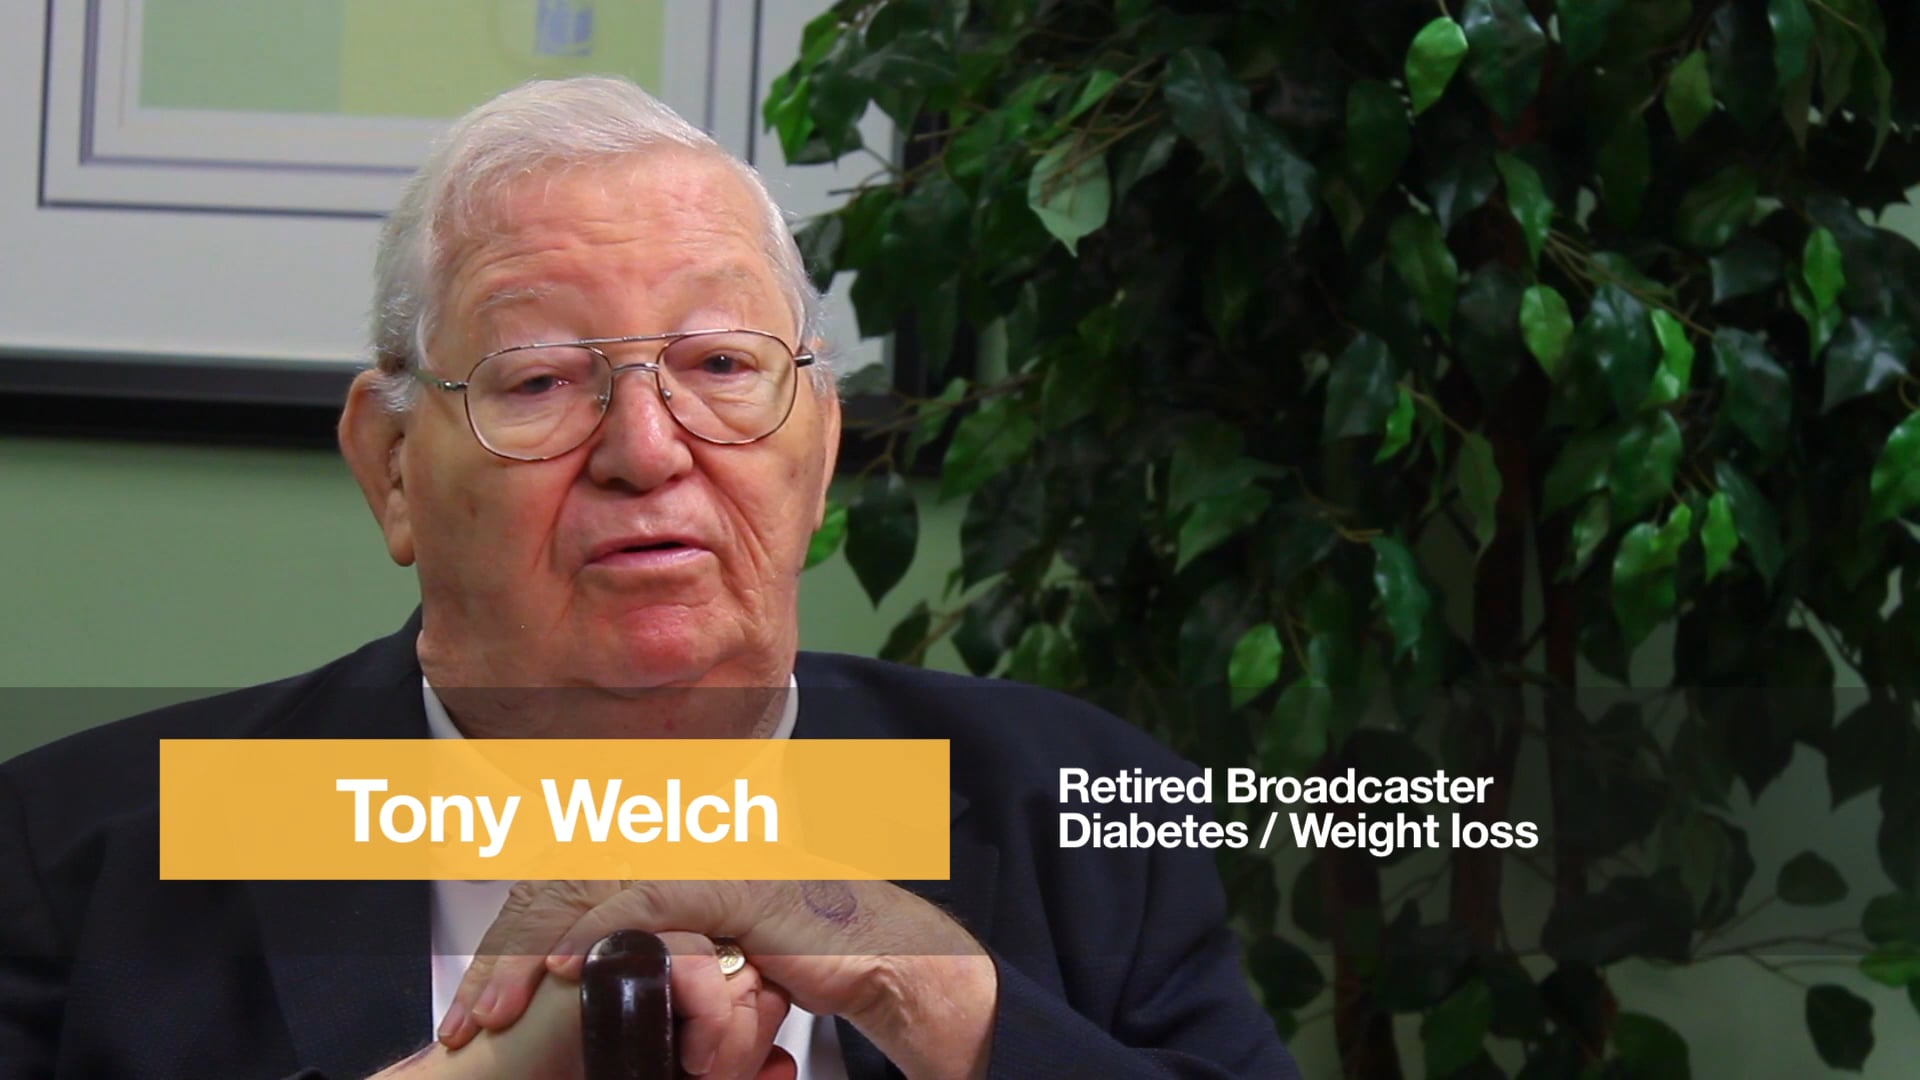 81 year old man receives help for weight-loss and diabetes while taking MicrobeFiber